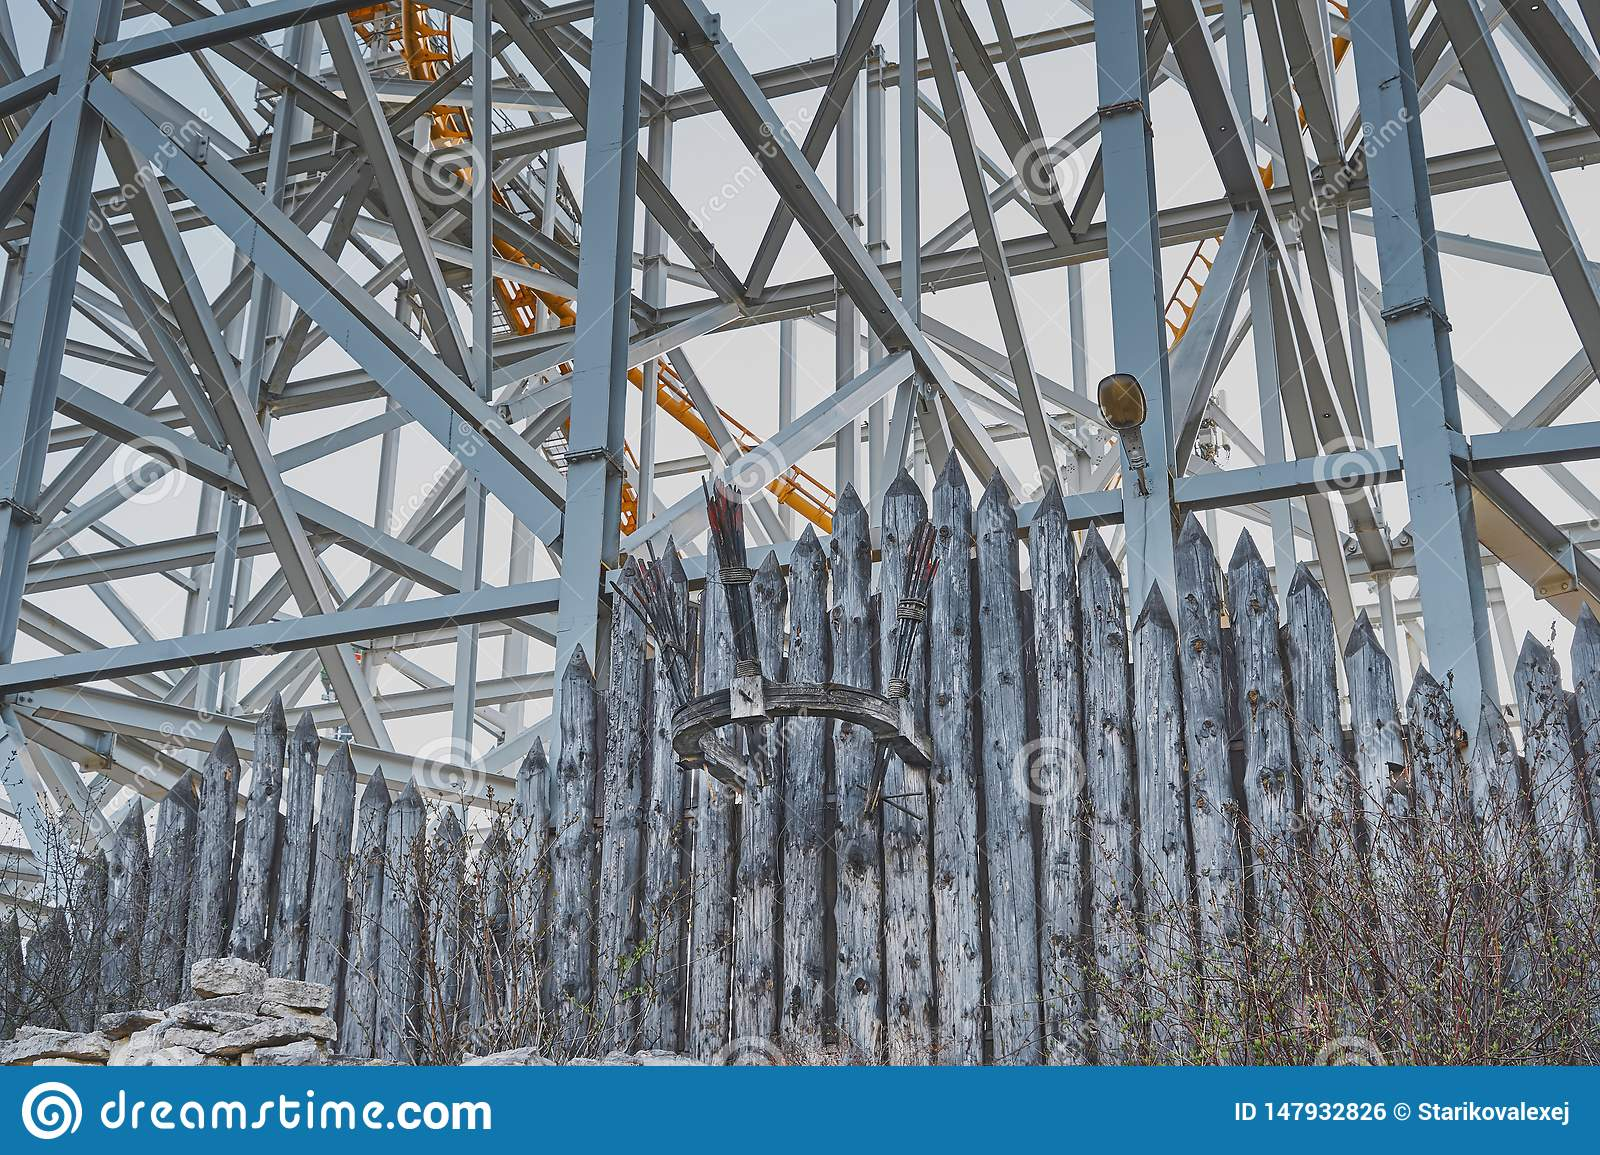 The fence of wooden logs, metal pillar, coniferous trees.